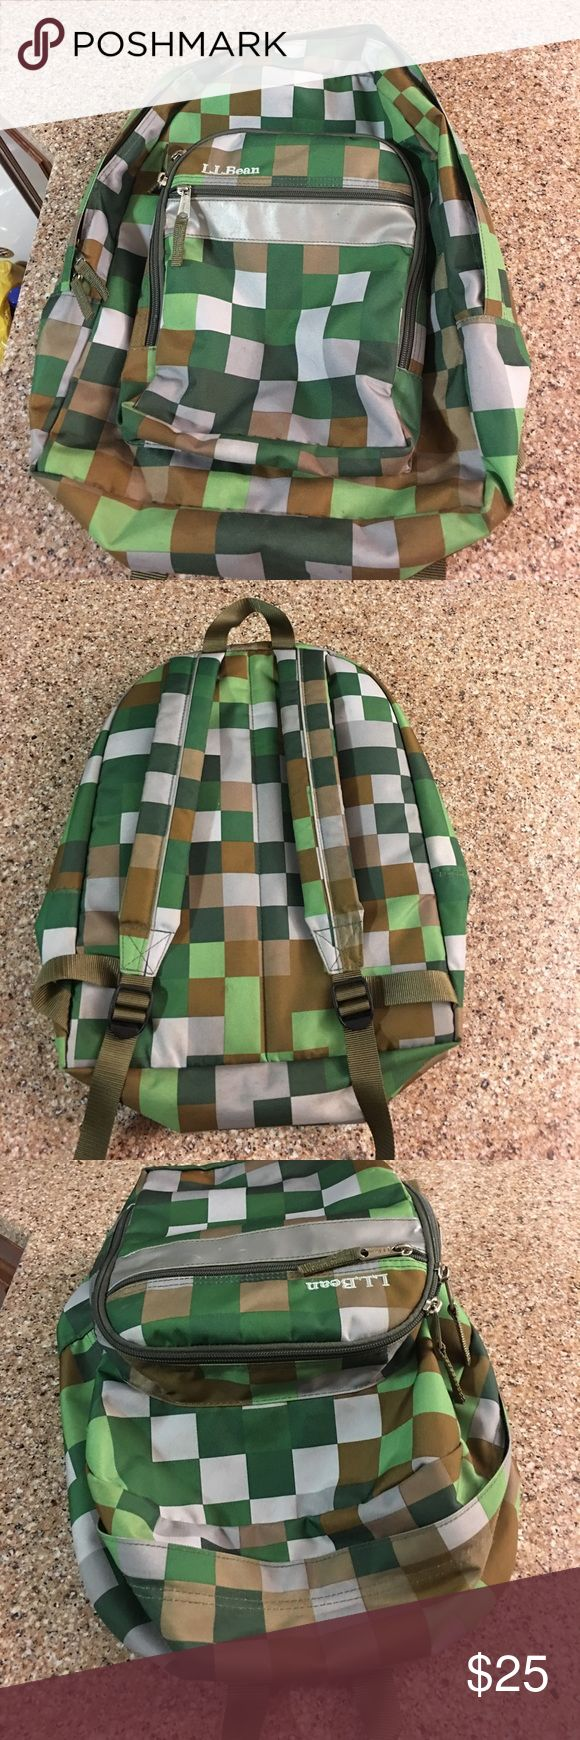 L.L Bean Green Pixel Minecraft Backpack L.L Bean Green Pixel Minecraft Backpack. Used condition some stains but a lot of life left. All zippers work. No tears. L.L. Bean Accessories Bags